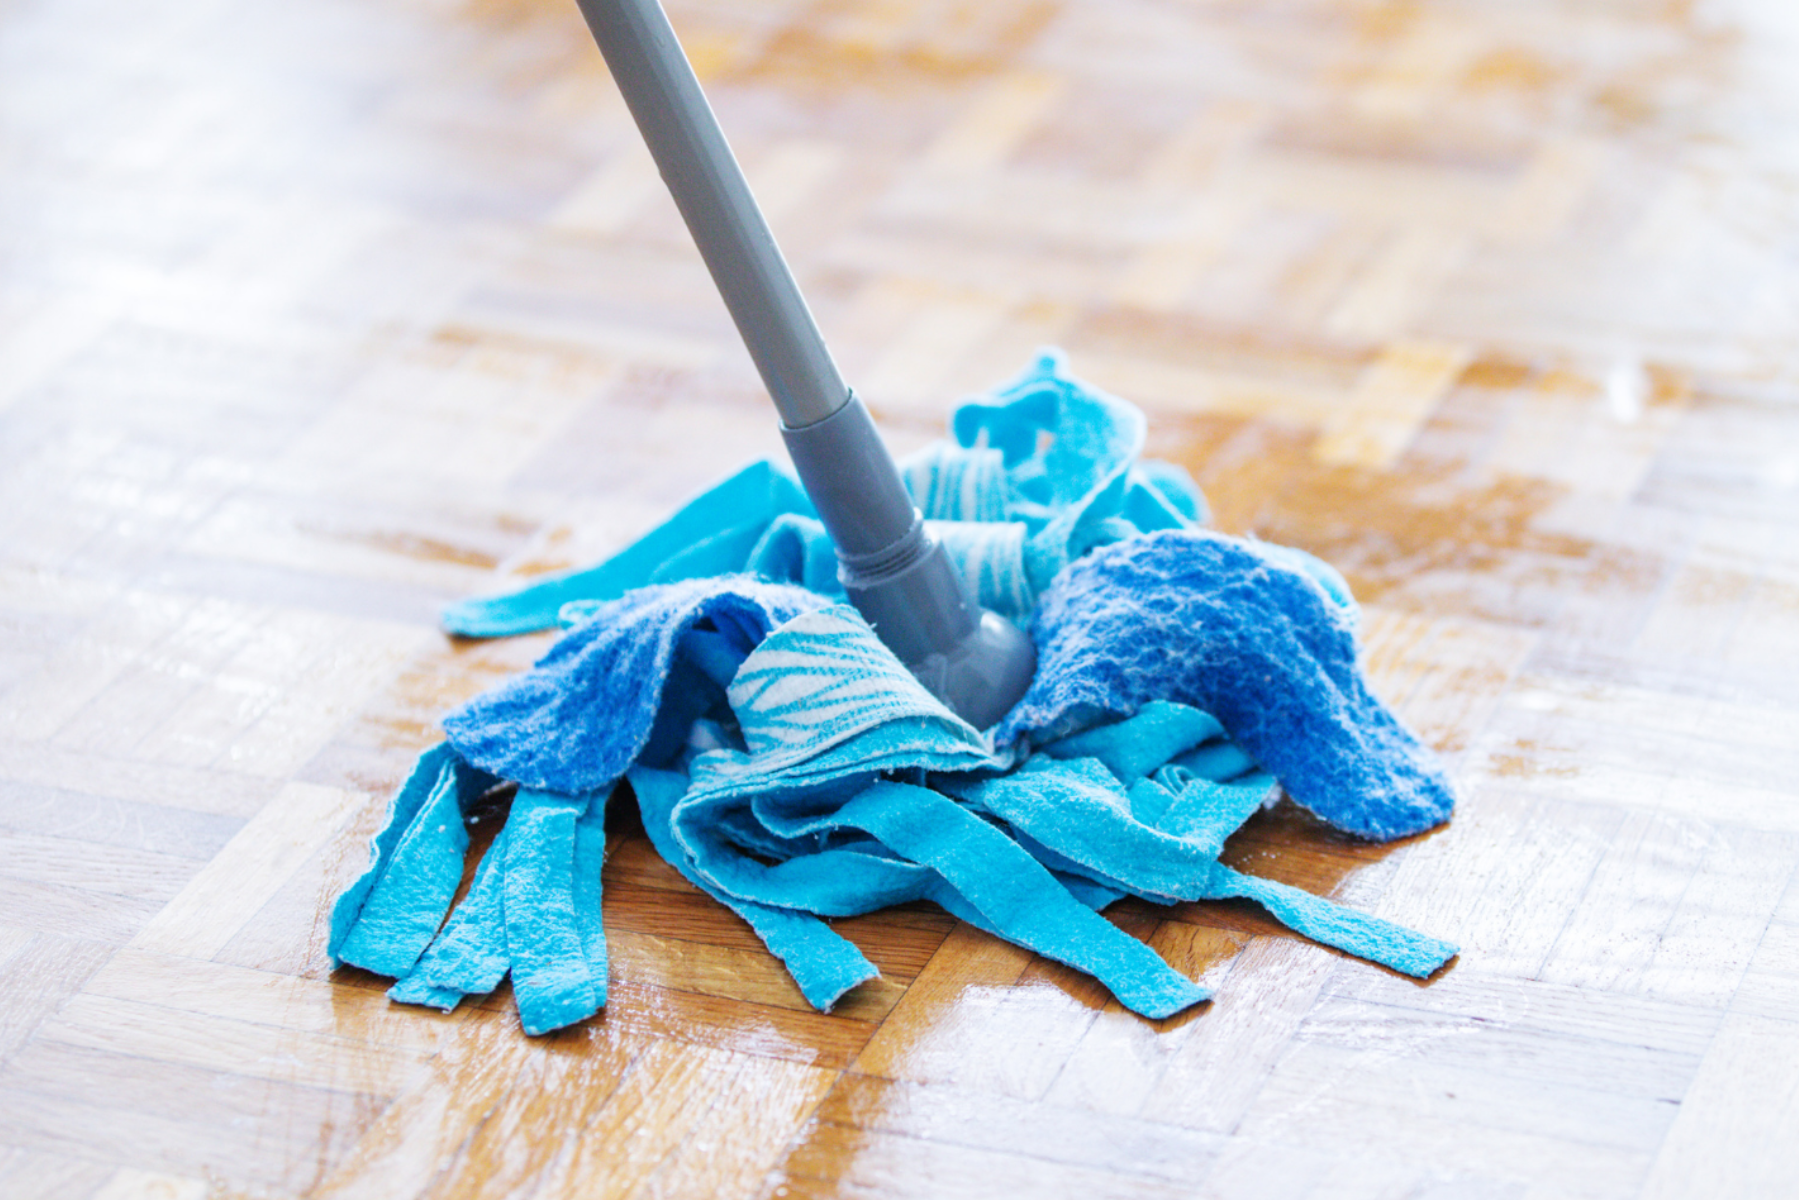 Someone using a blue mop head to mop the floor